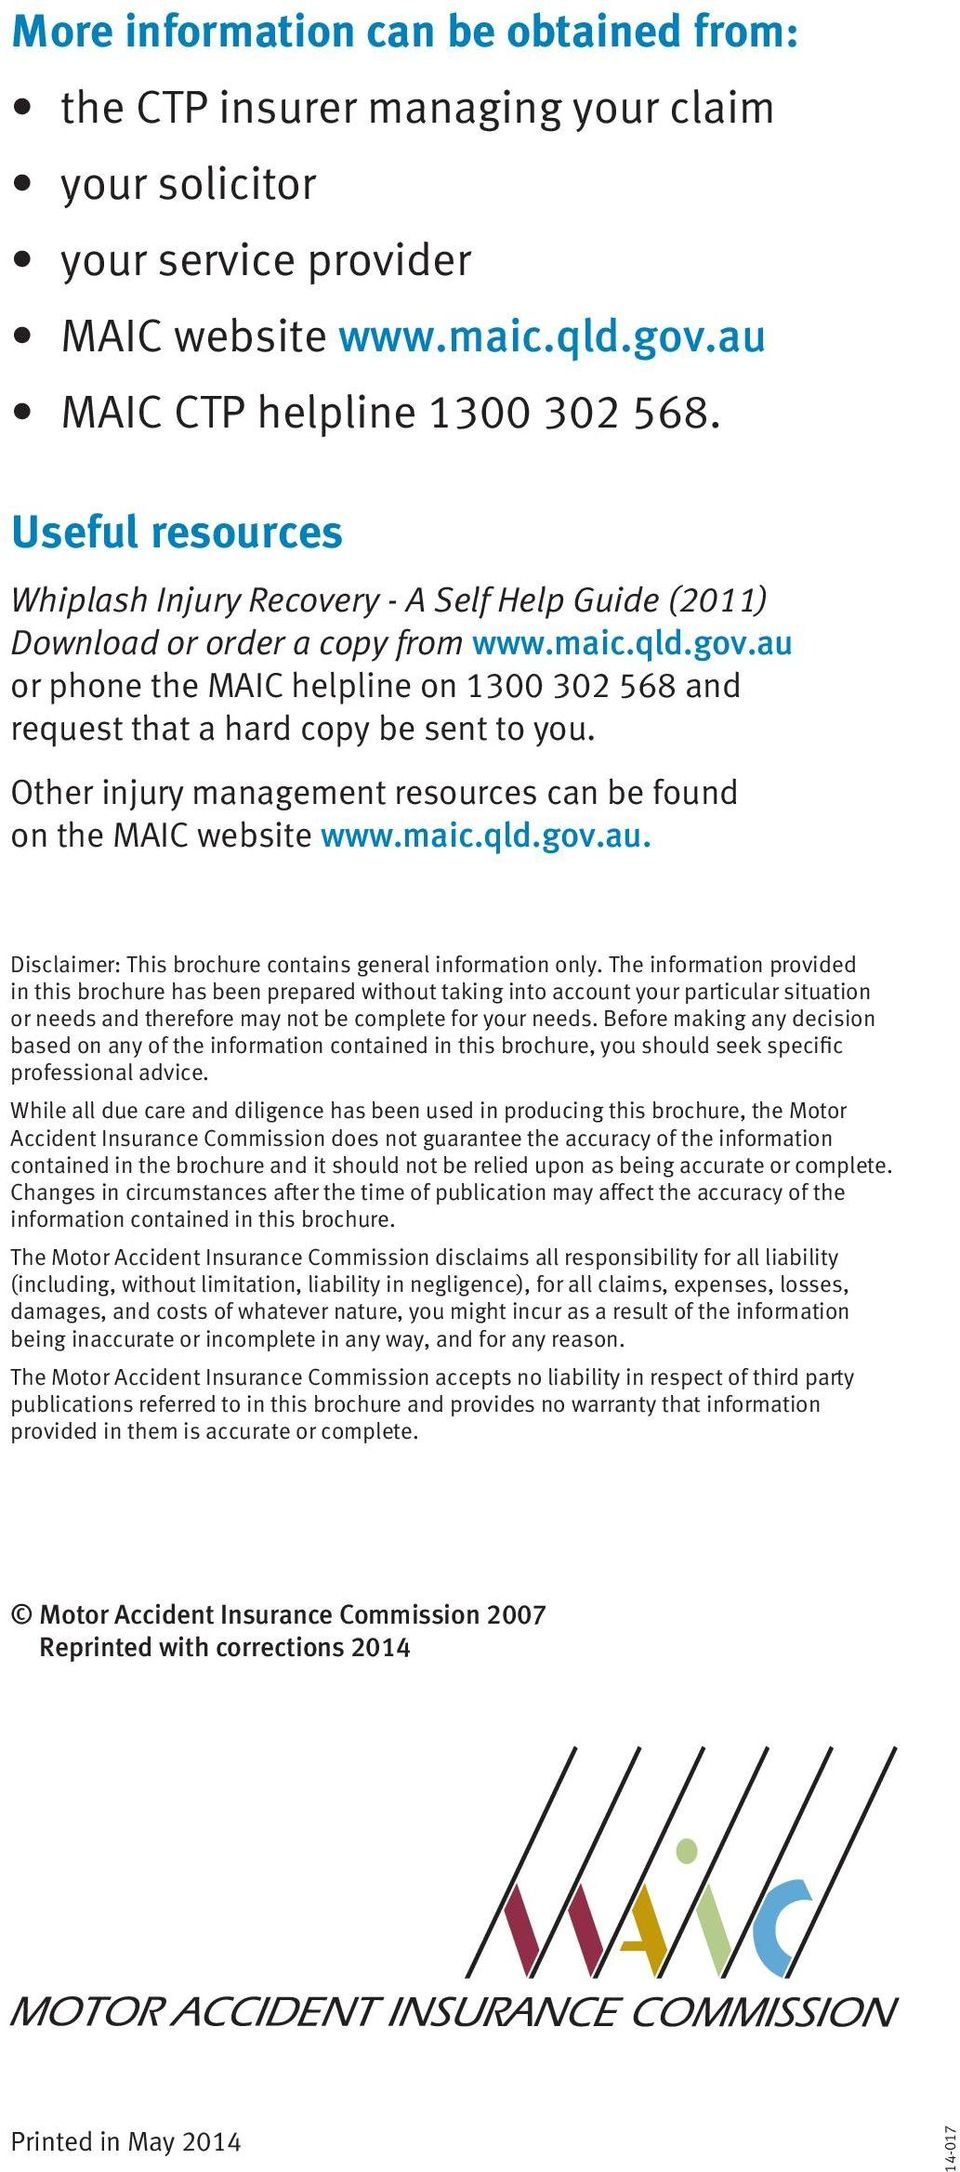 au or phone the MAIC helpline on 1300 302 568 and request that a hard copy be sent to you. Other injury management resources can be found on the MAIC website www.maic.qld.gov.au. Disclaimer: This brochure contains general information only.